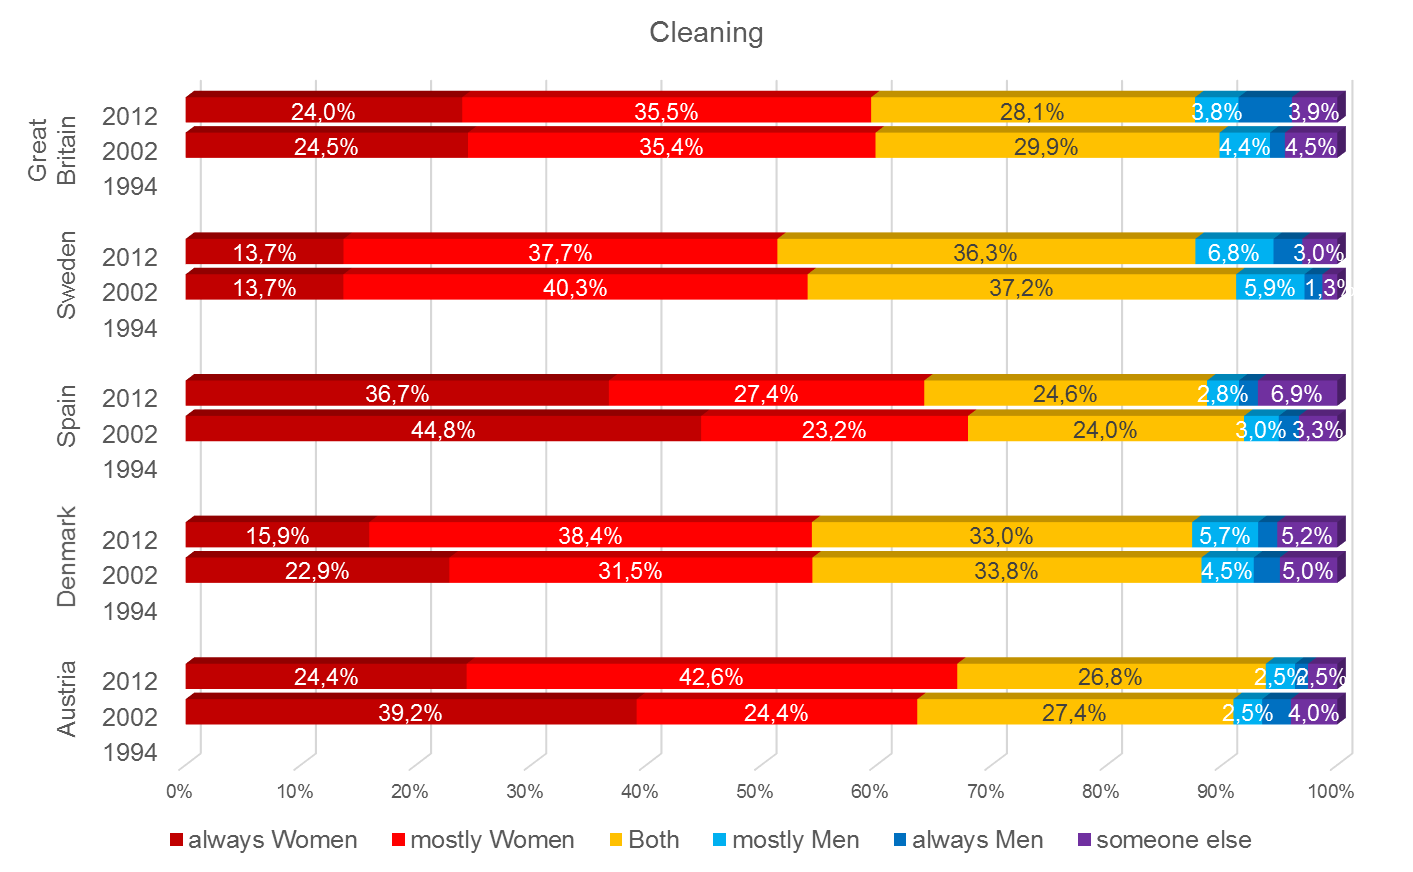 Share of housework: Cleaning (Source: